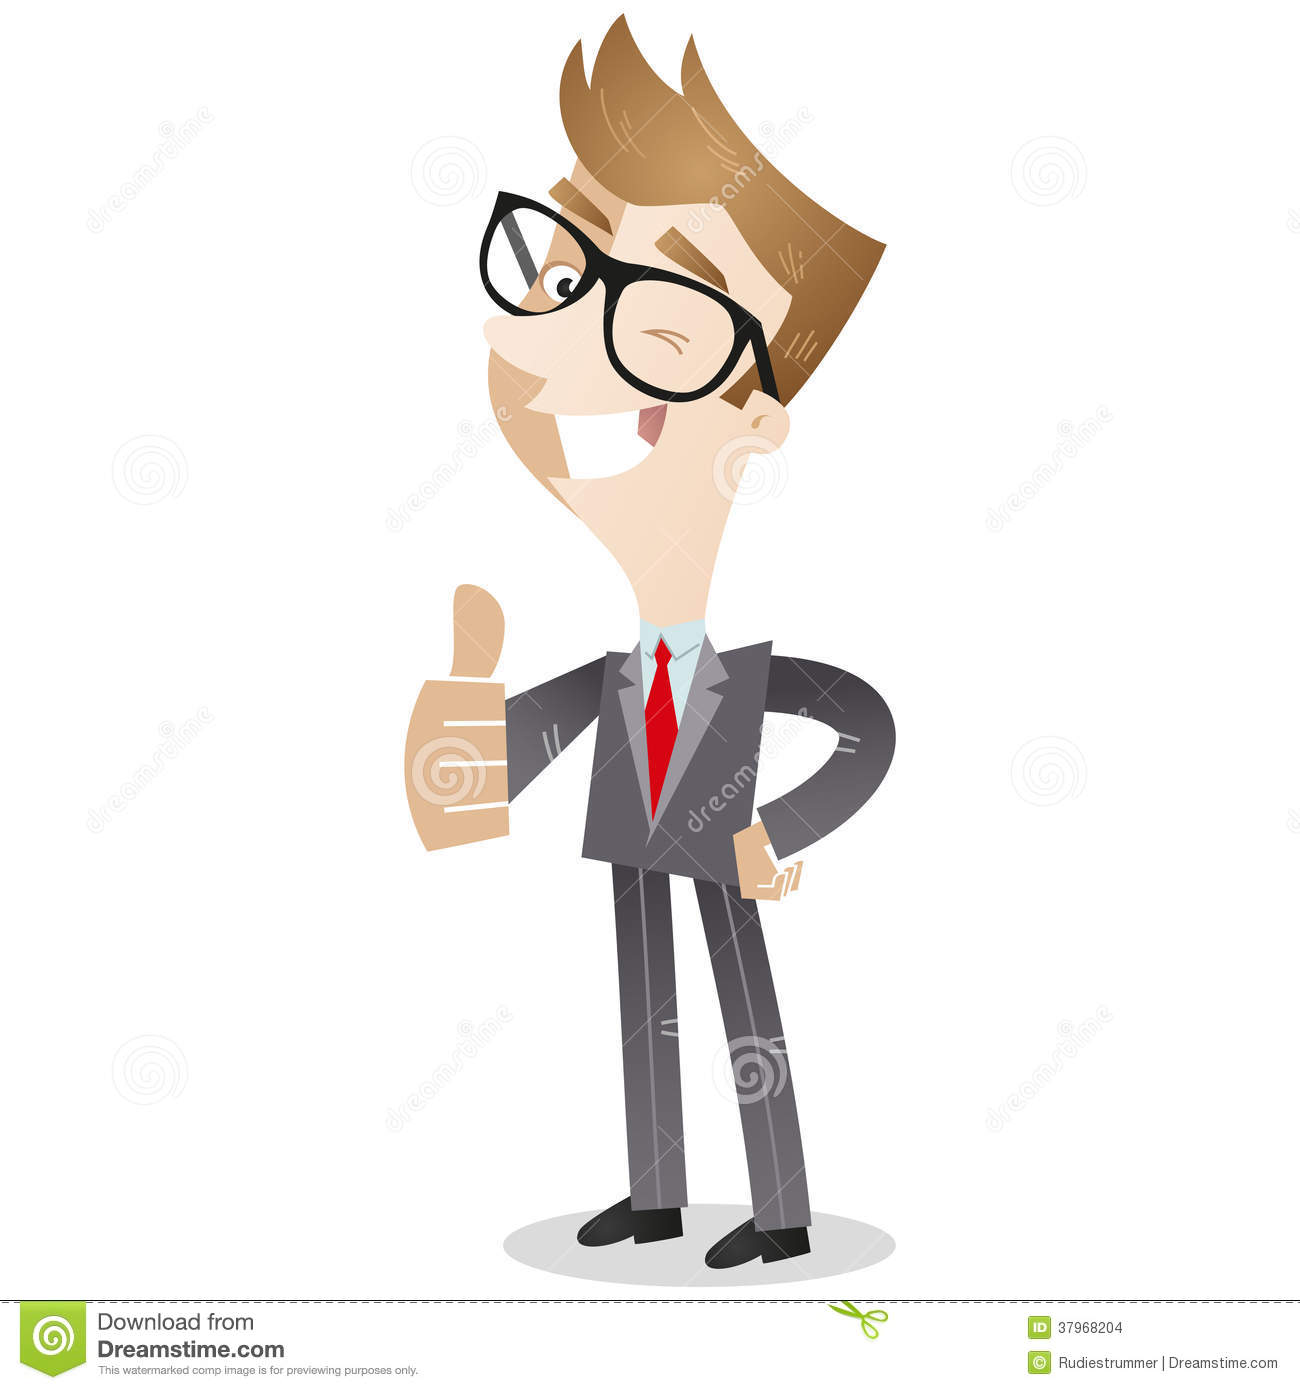 Cartoon Business Man In Three Quarter Profile Giving The Thumbs Up